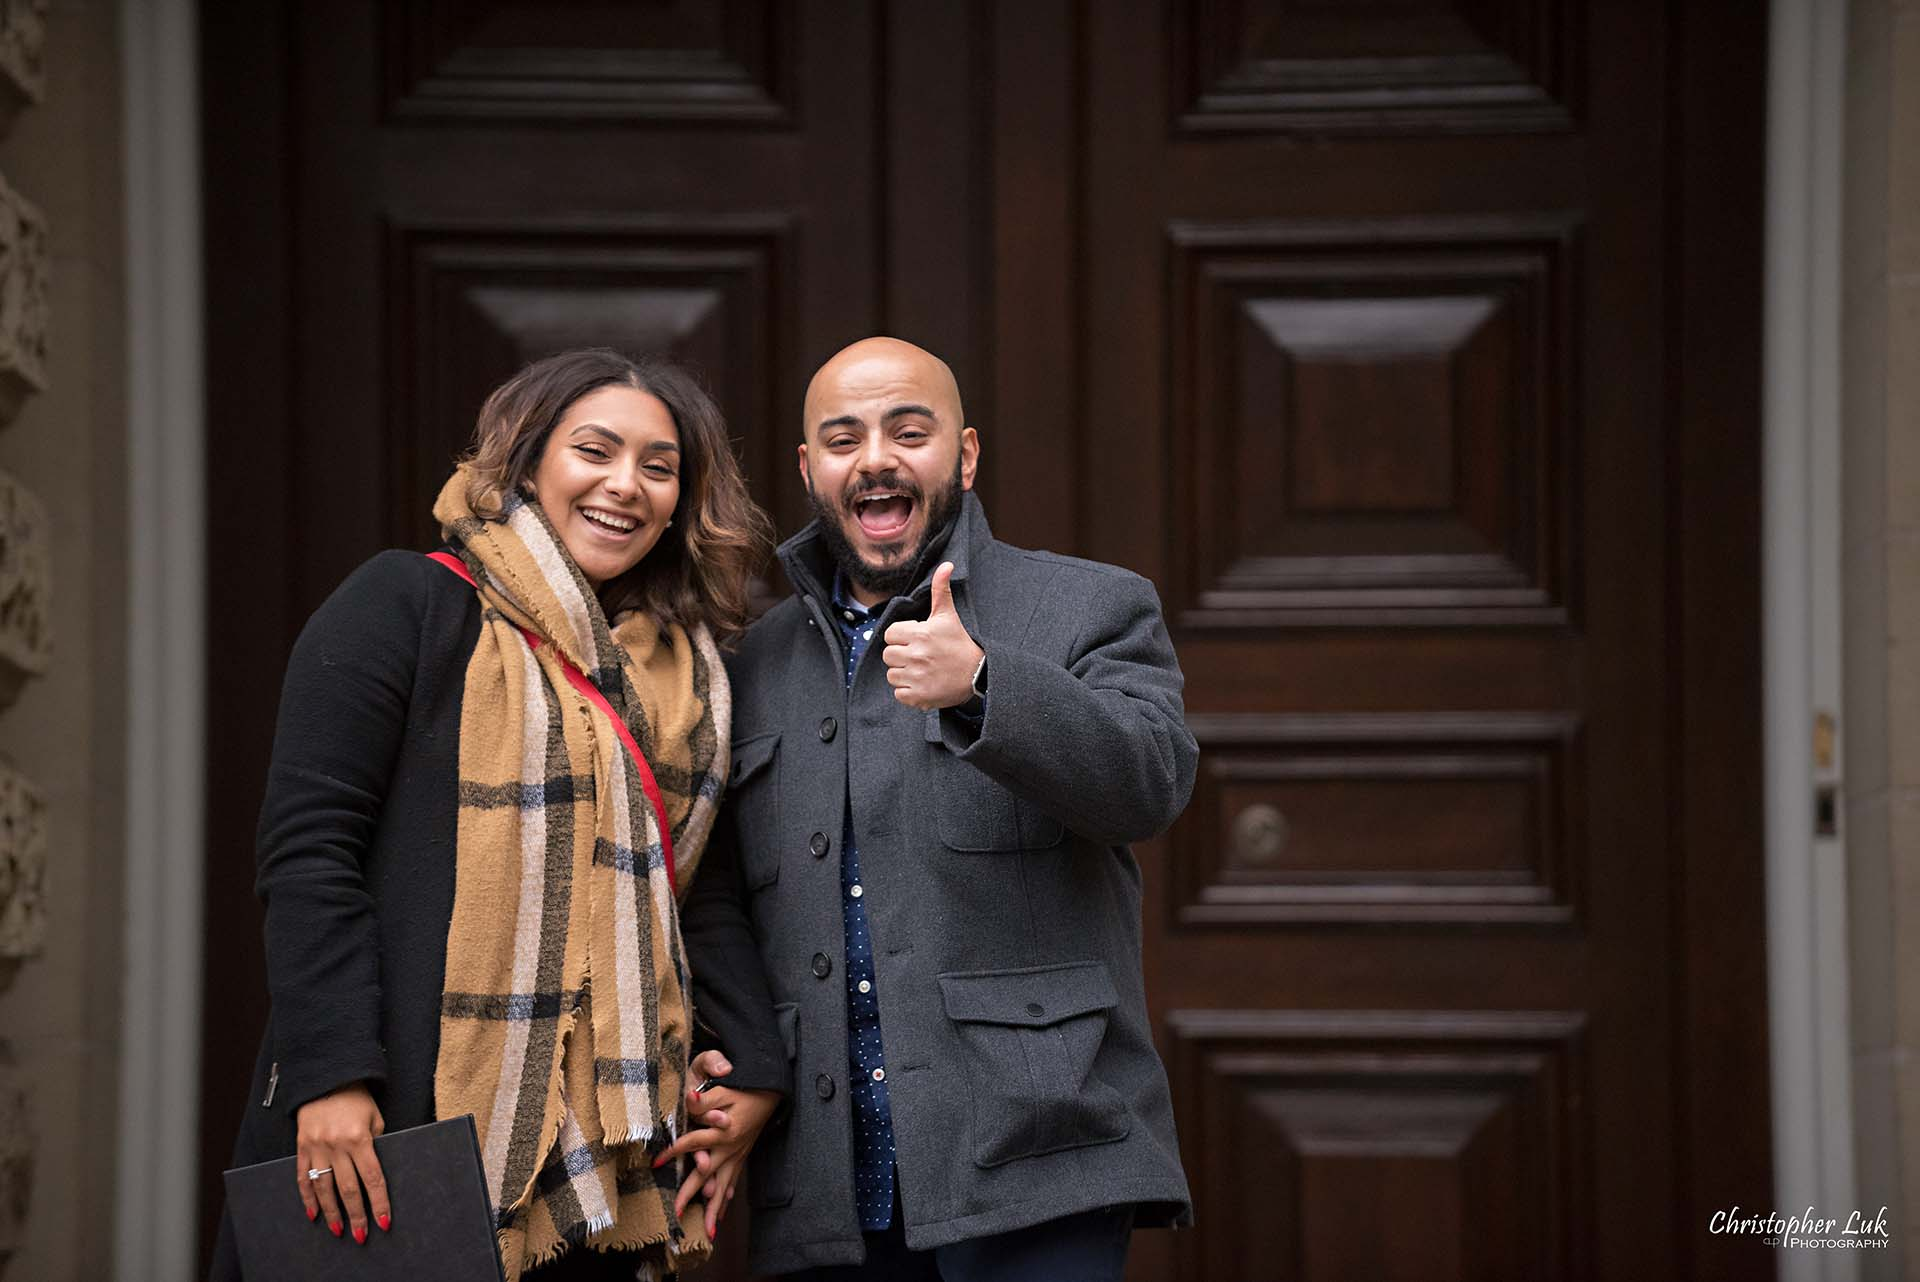 Christopher Luk Toronto Wedding Photographer - Toronto Osgoode Hall Surprise Proposal Engaged Engagement Will You Marry Me She Said Yes Natural Candid Photojournalistic - Fiancé Fiancée Bride Groom Celebrate Congratulations Thumbs Up